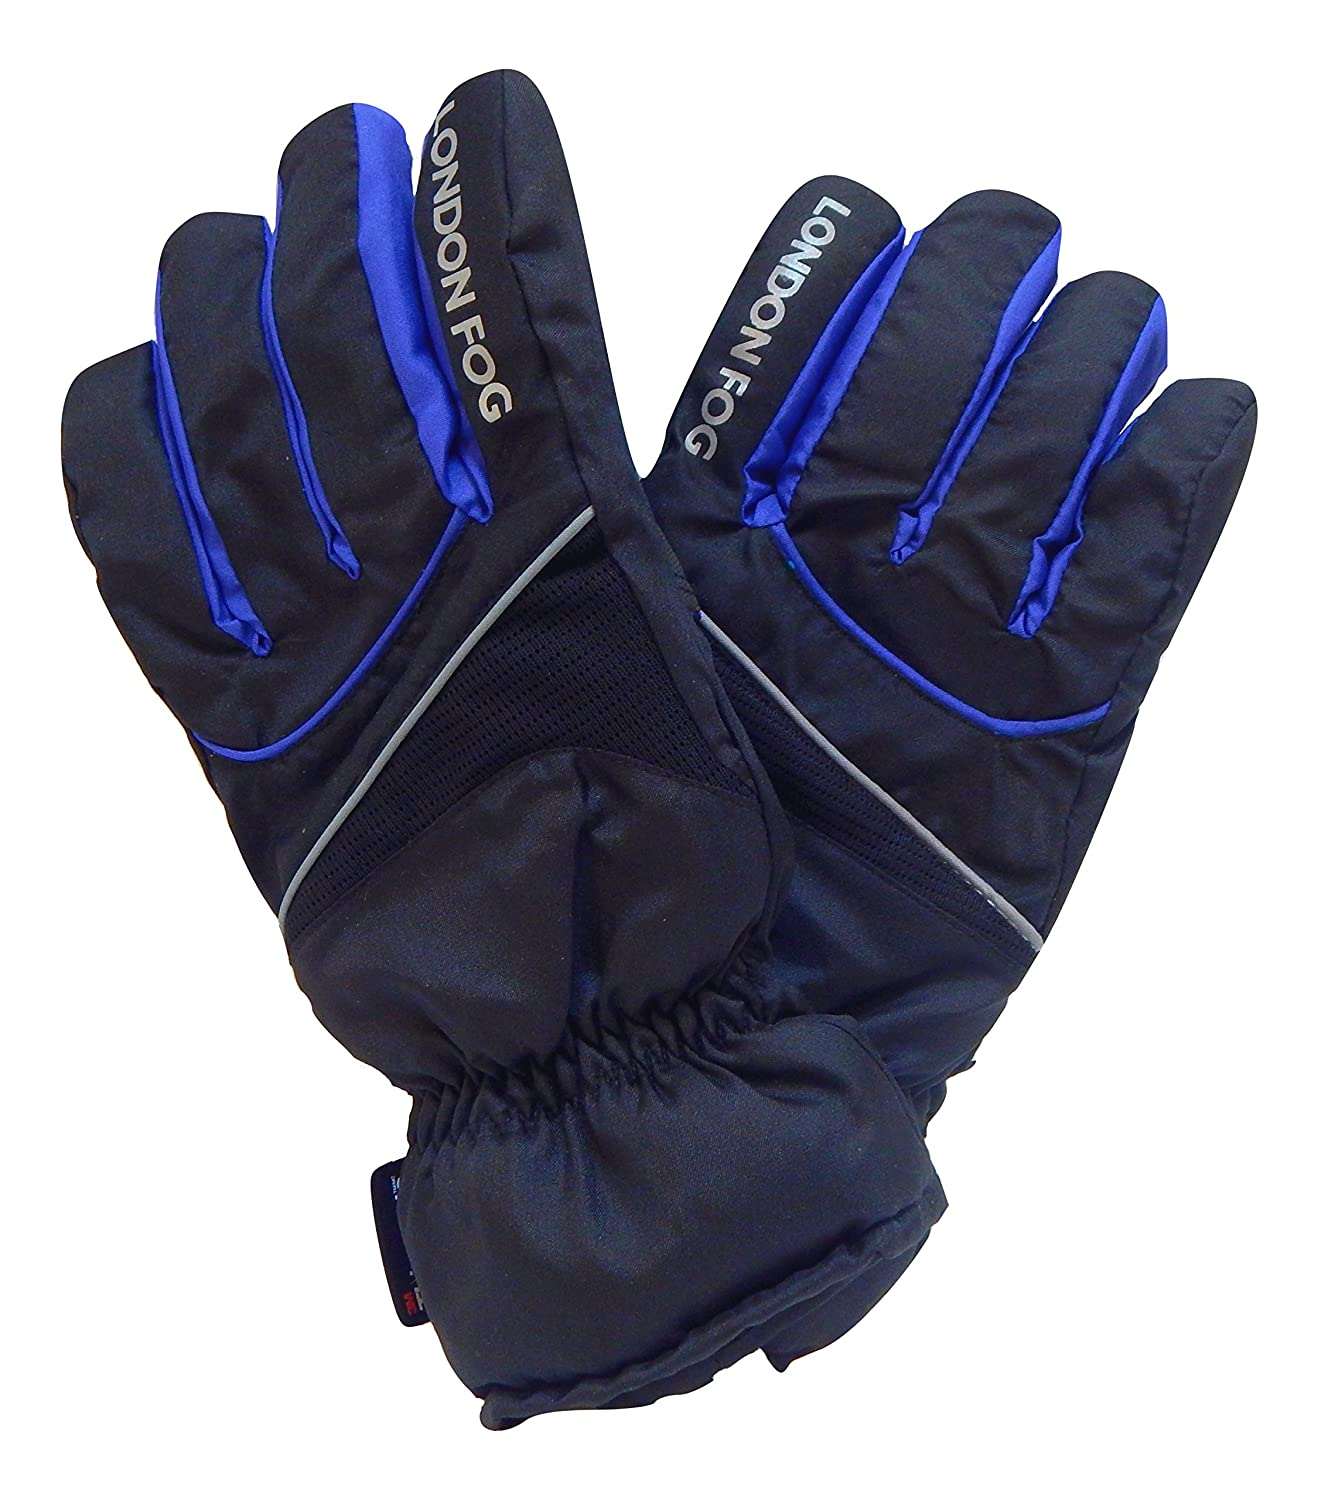 London Fog Youth Ski Gloves Thinsulate Lined Waterproof Ski Gloves for Girls and Boys